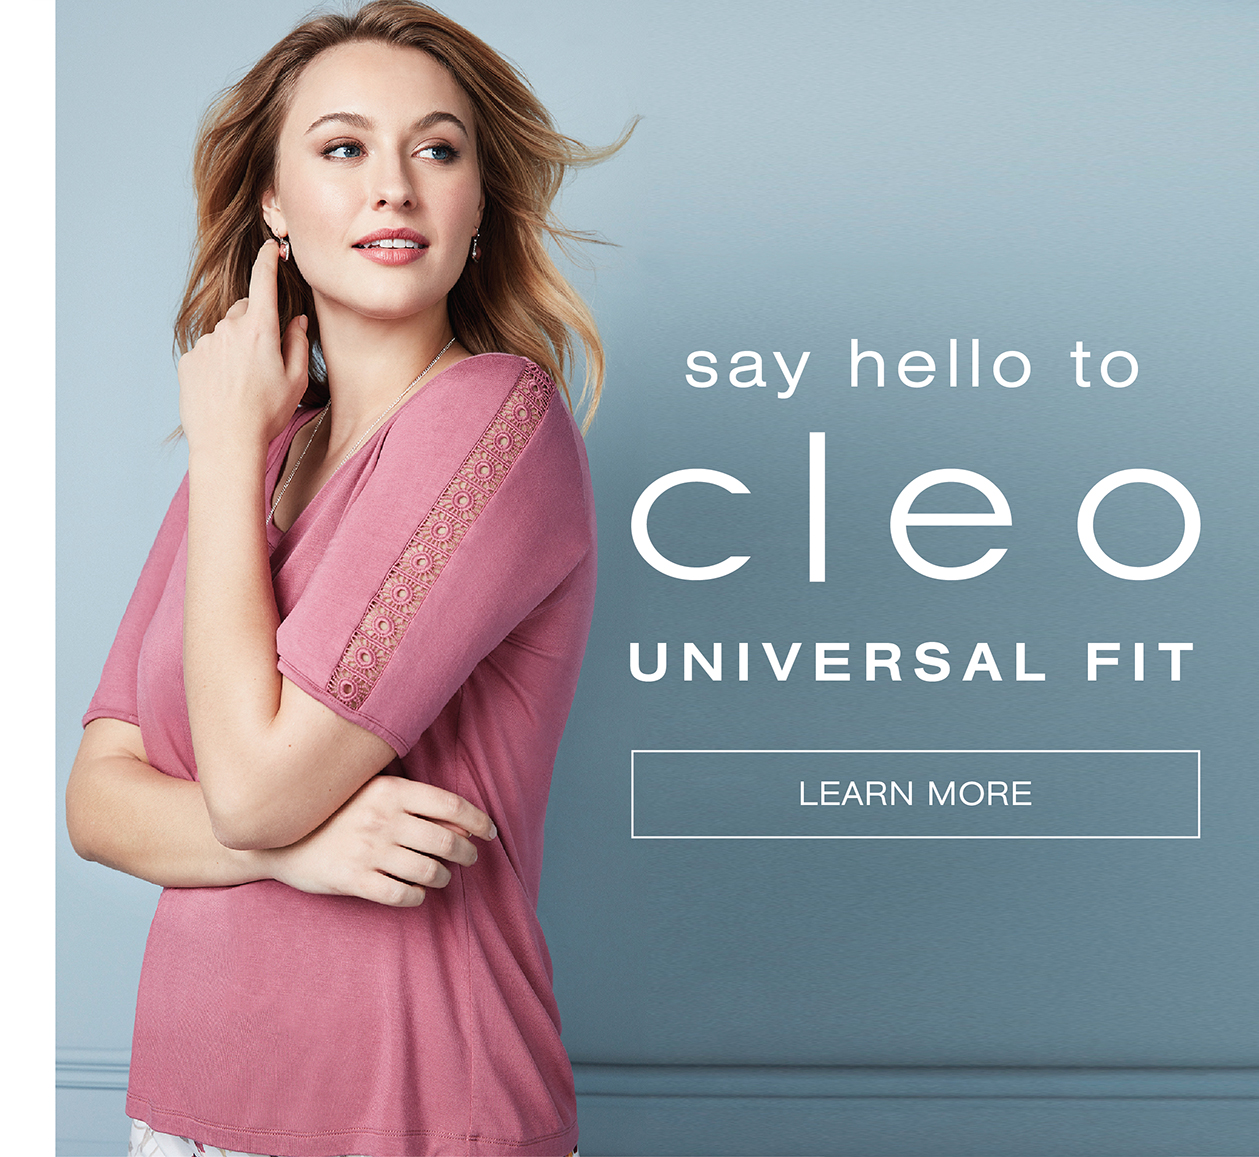 Say hello to Cleo Universal Fit. Learn More.